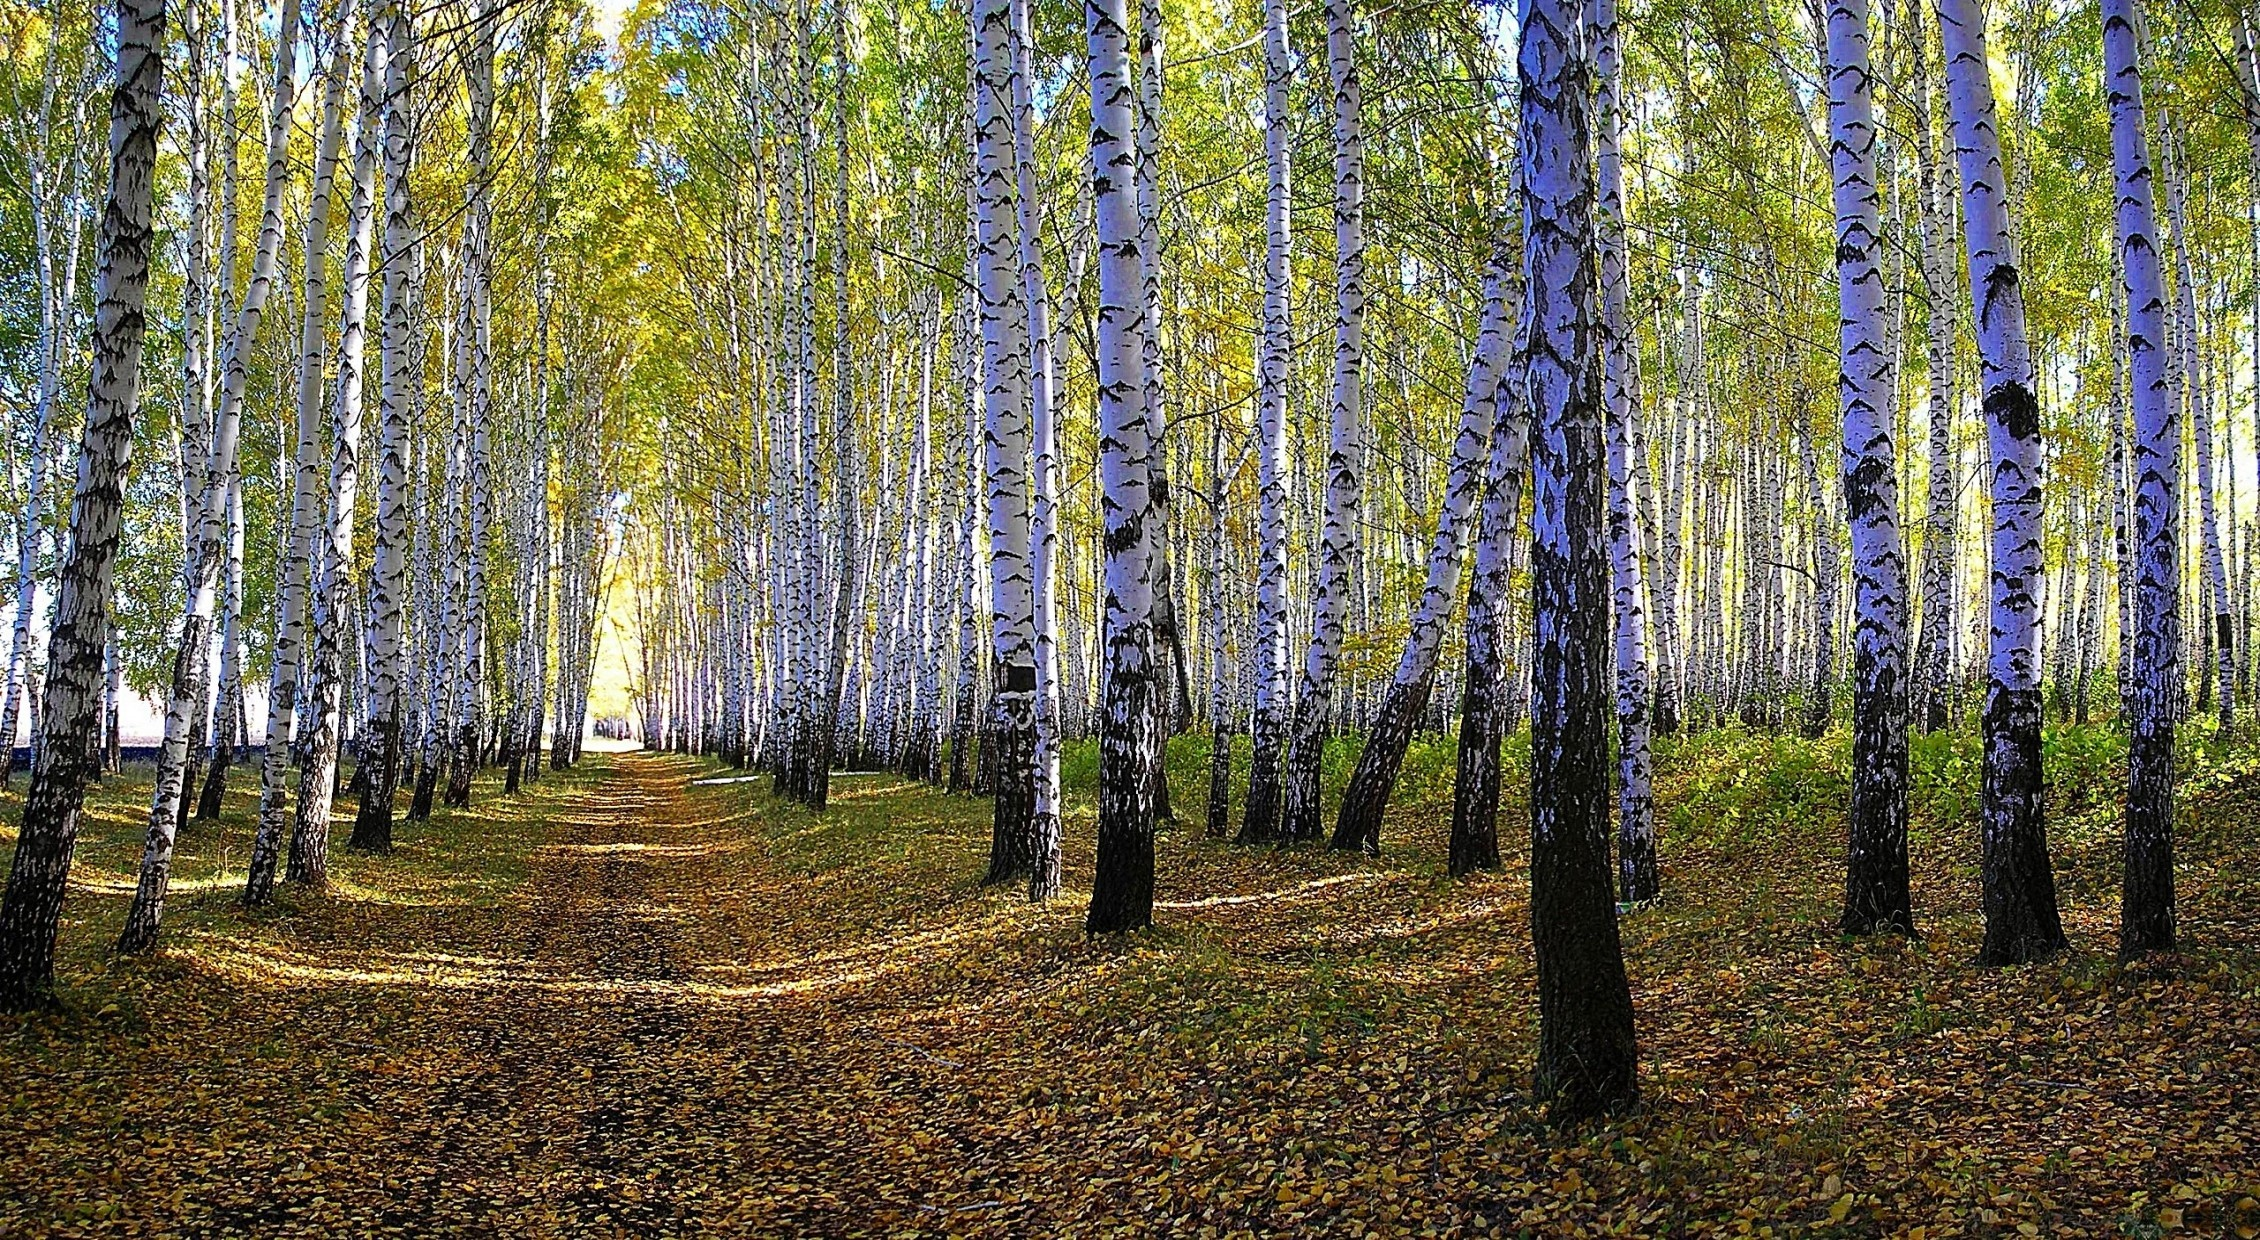 Res: 2260x1240, Birch Forest Nature Trees Tree Path Leaves Limbs White Birches Trunk Green  Grass Wallpaper New Leaf